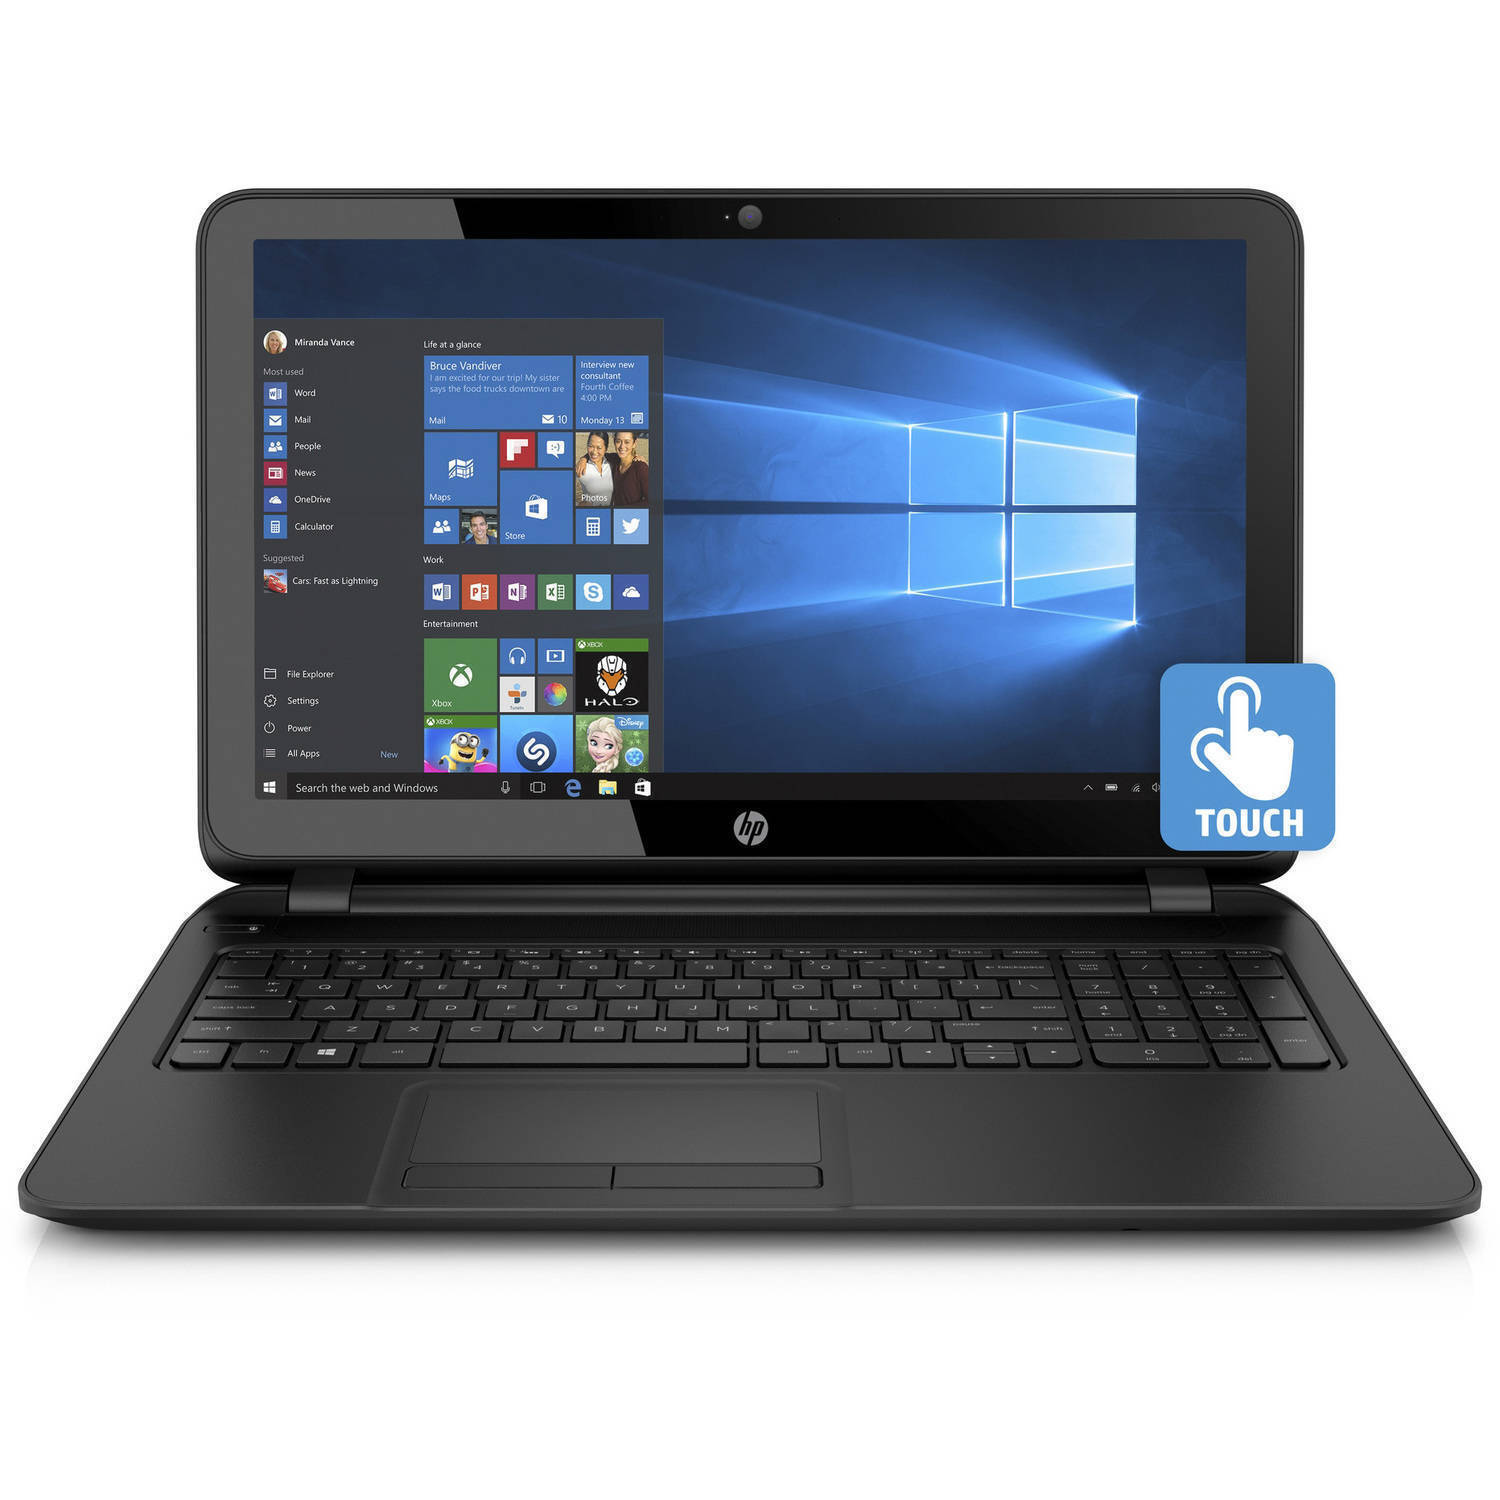 "Laptop - New HP15.6"" Touchscreen Laptop/Intel Quad Core/4GB/500GB/Win10/Blk 15-F222WM"